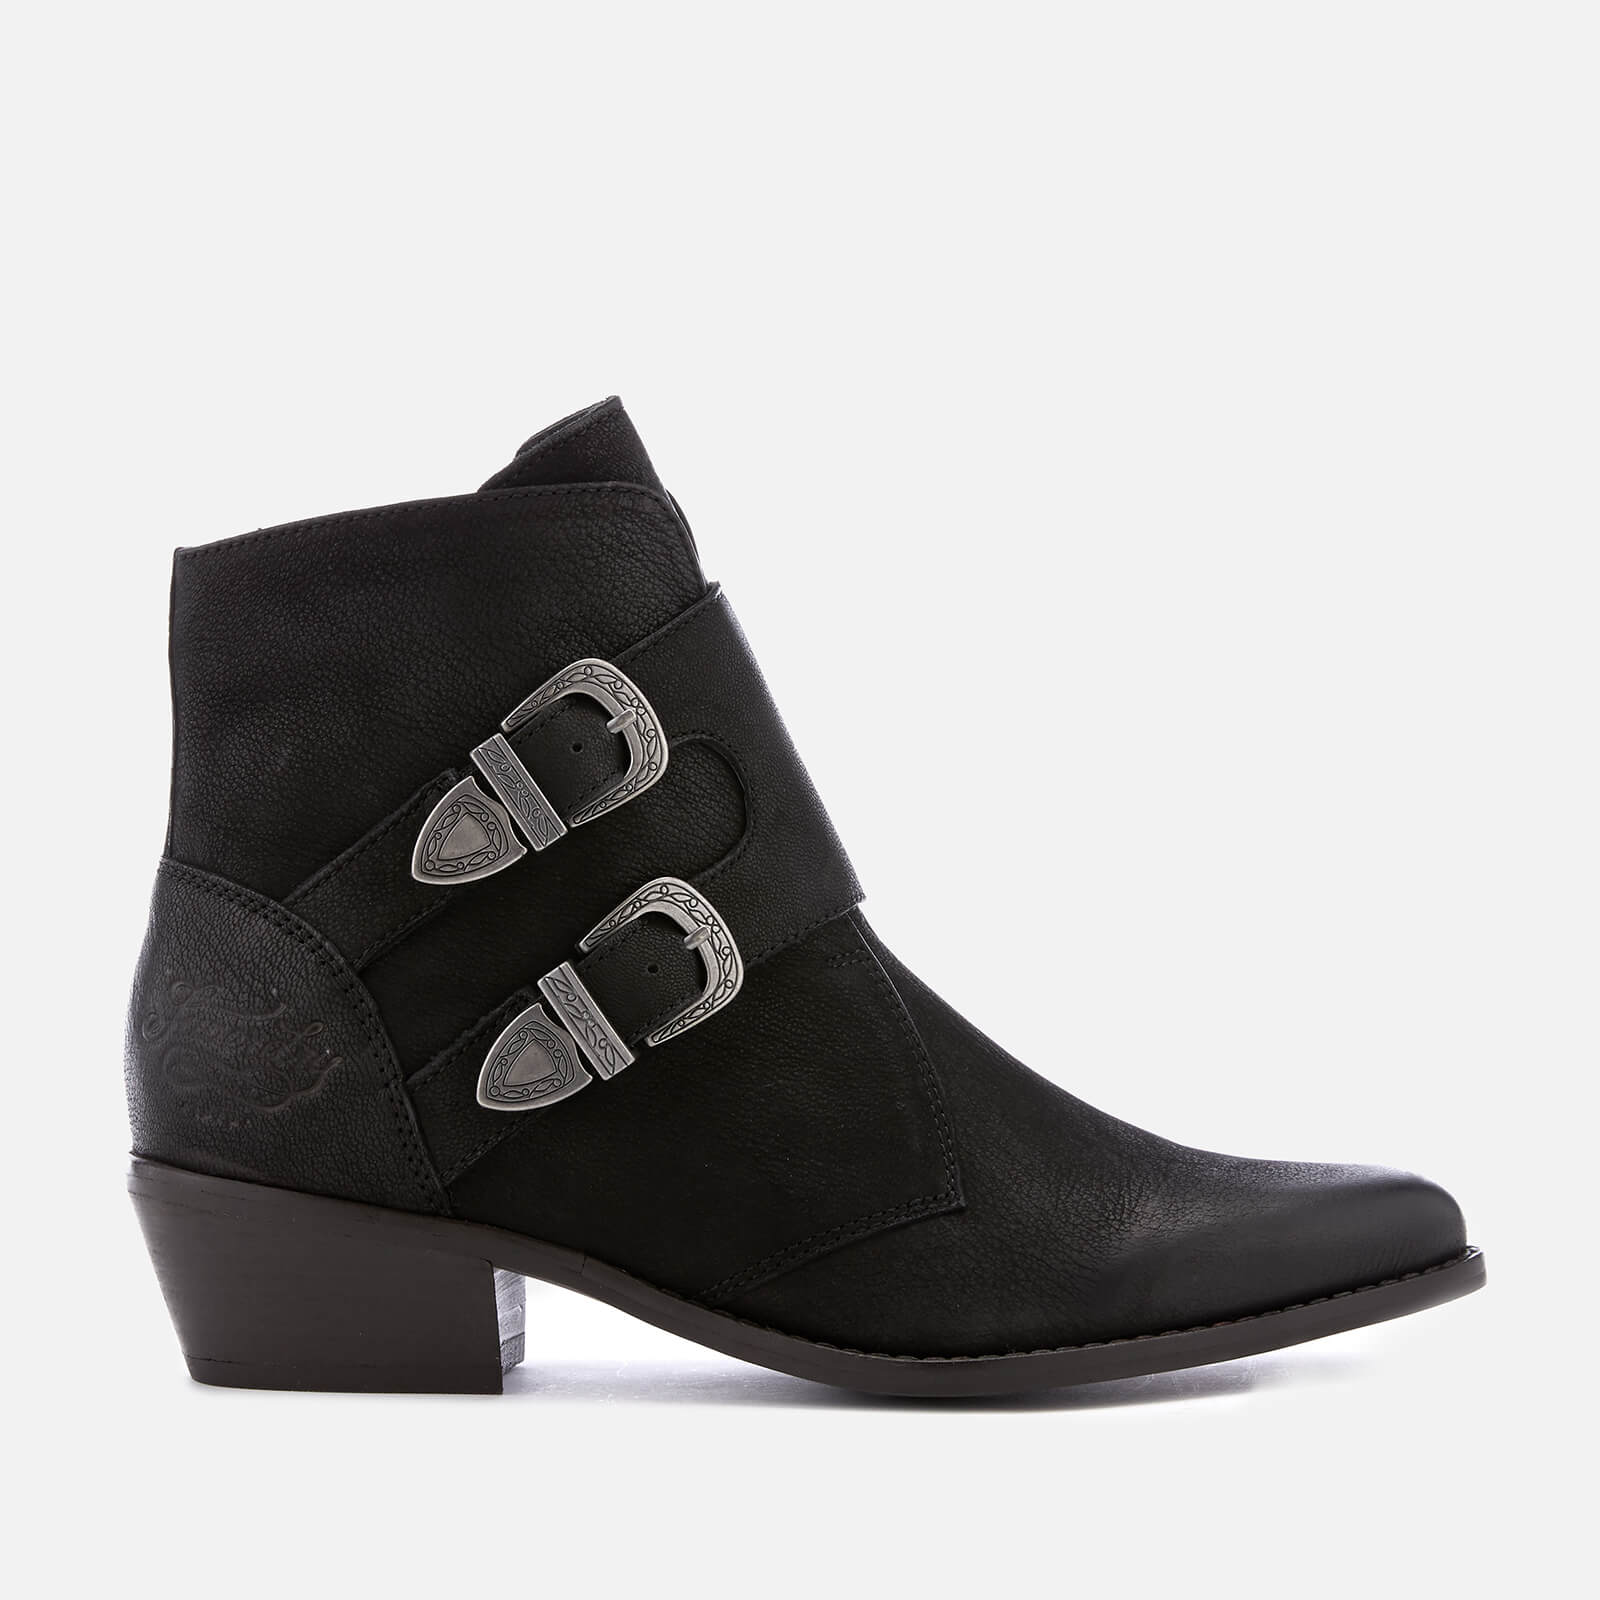 5bf13a112d062 Superdry Women's Rodeo Monk Heeled Ankle Boots - Black